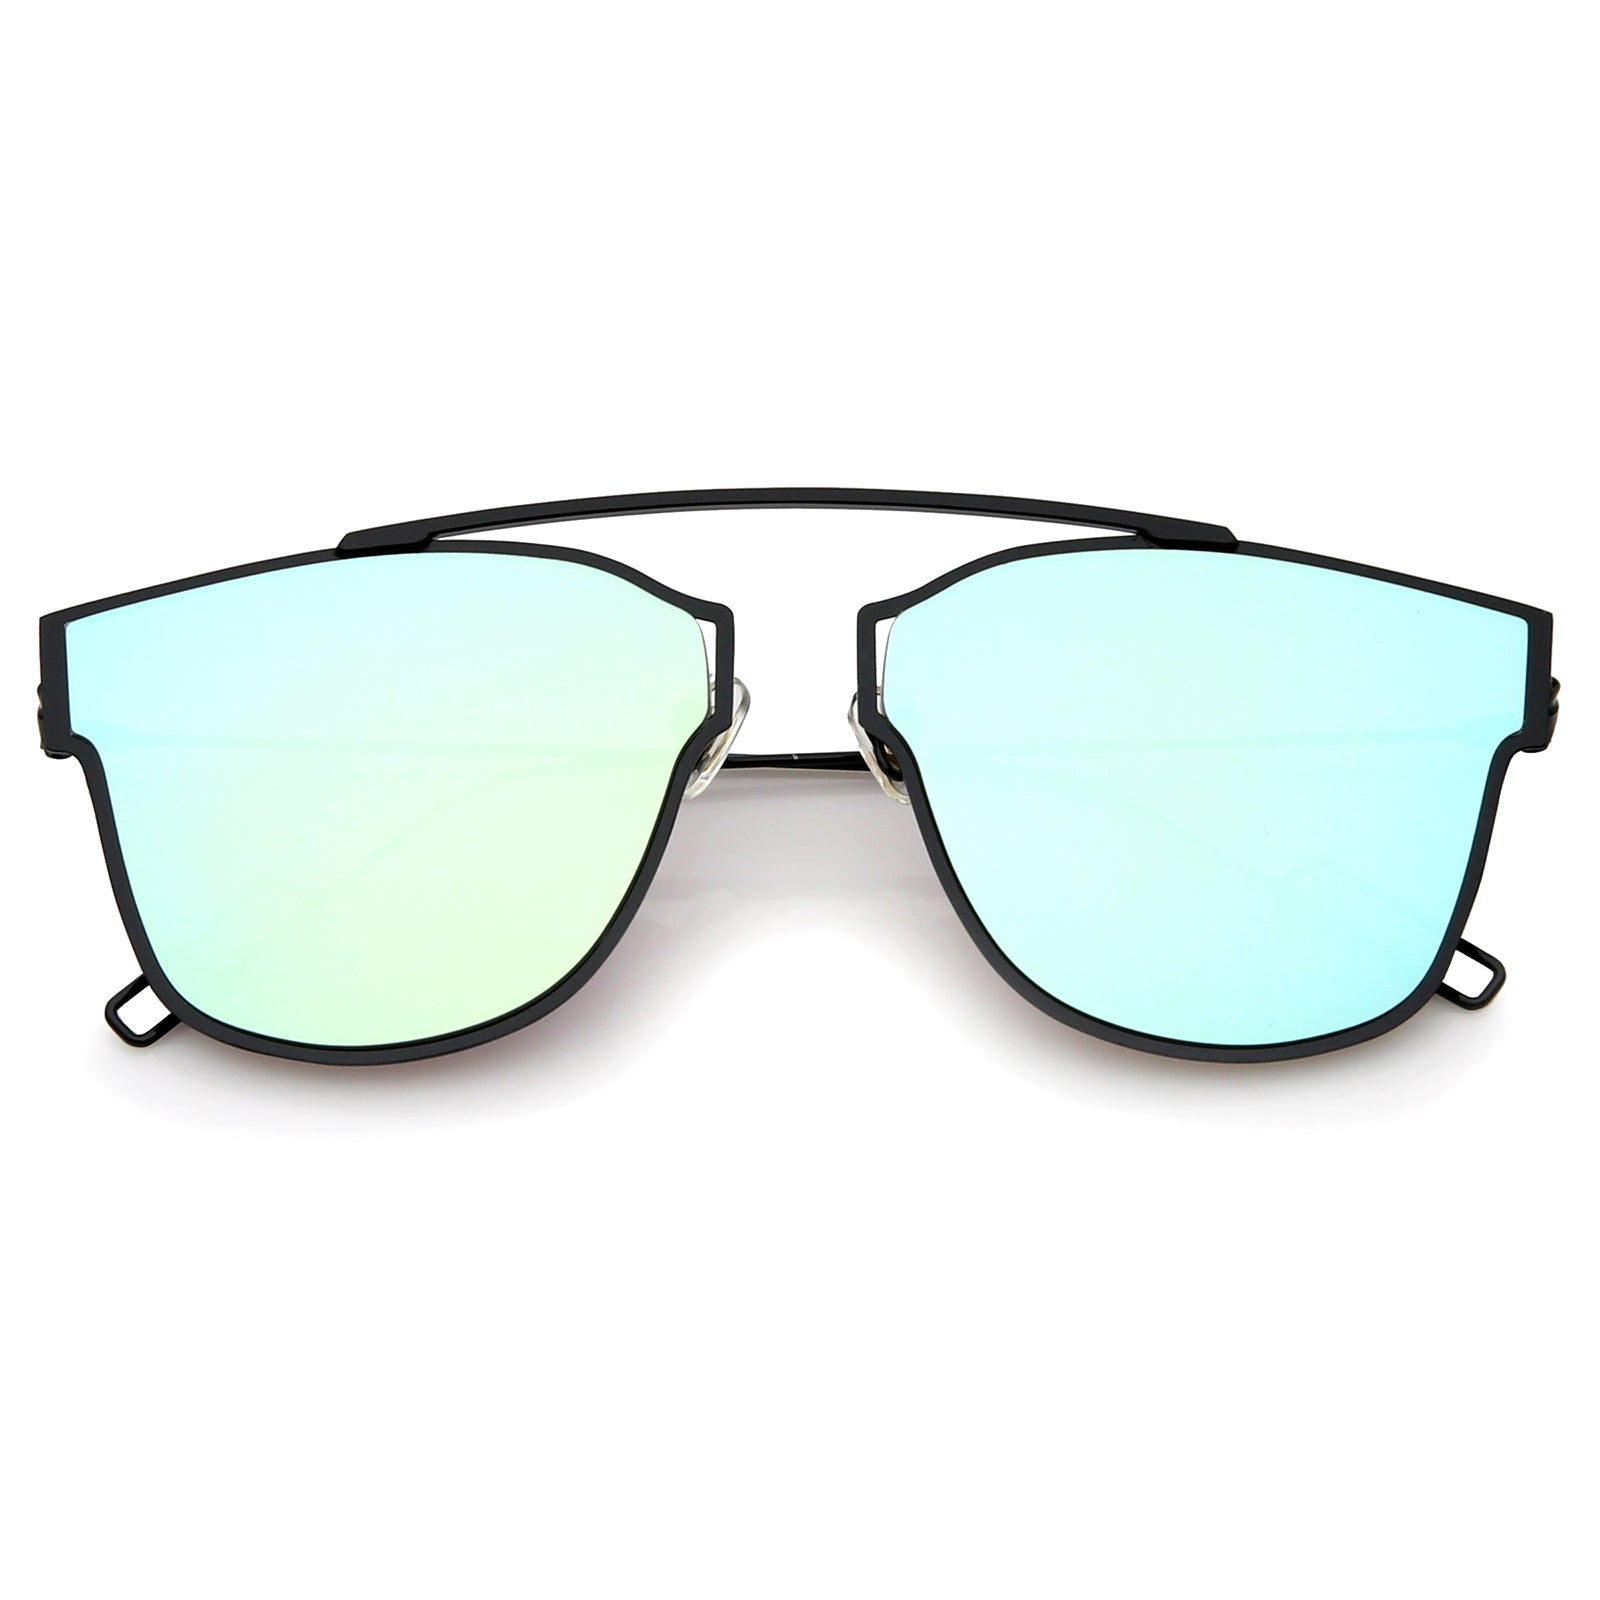 Modern Flash Mirror Lens Ultra Thin Open Metal Minimal Pantos Aviator Sunglasses 59mm - sunglass.la - 5